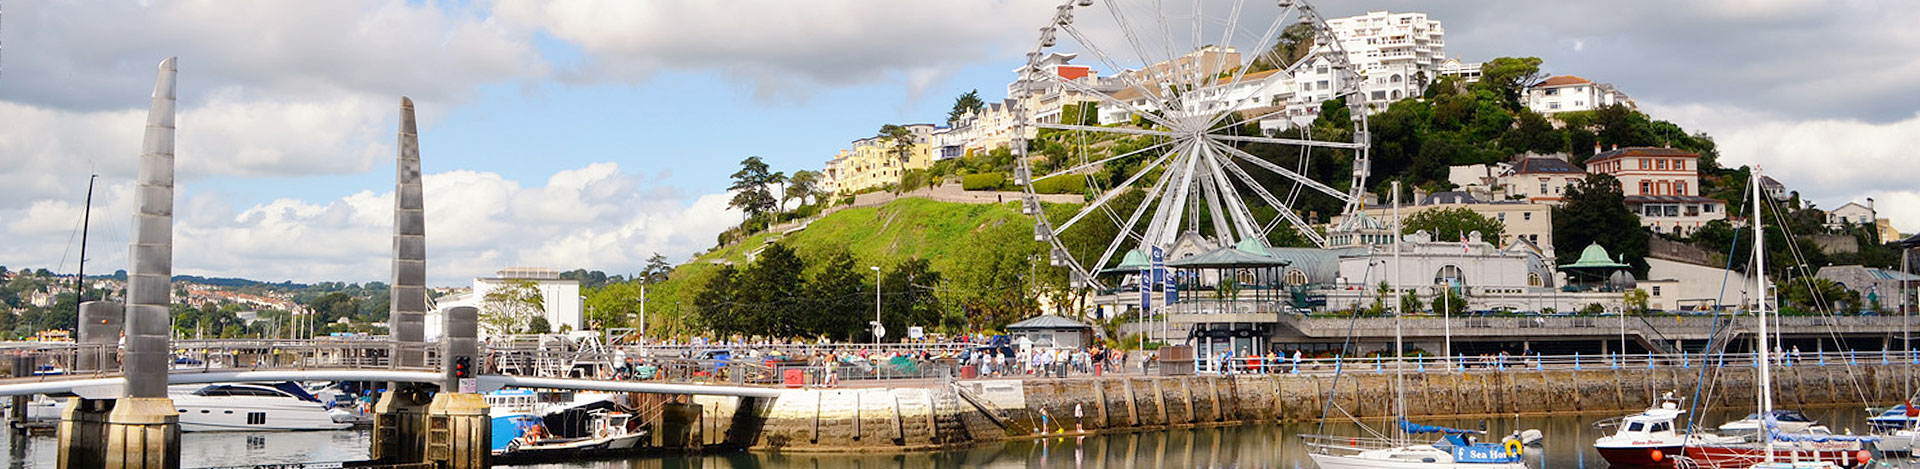 Torquay - Home of Riviera English School